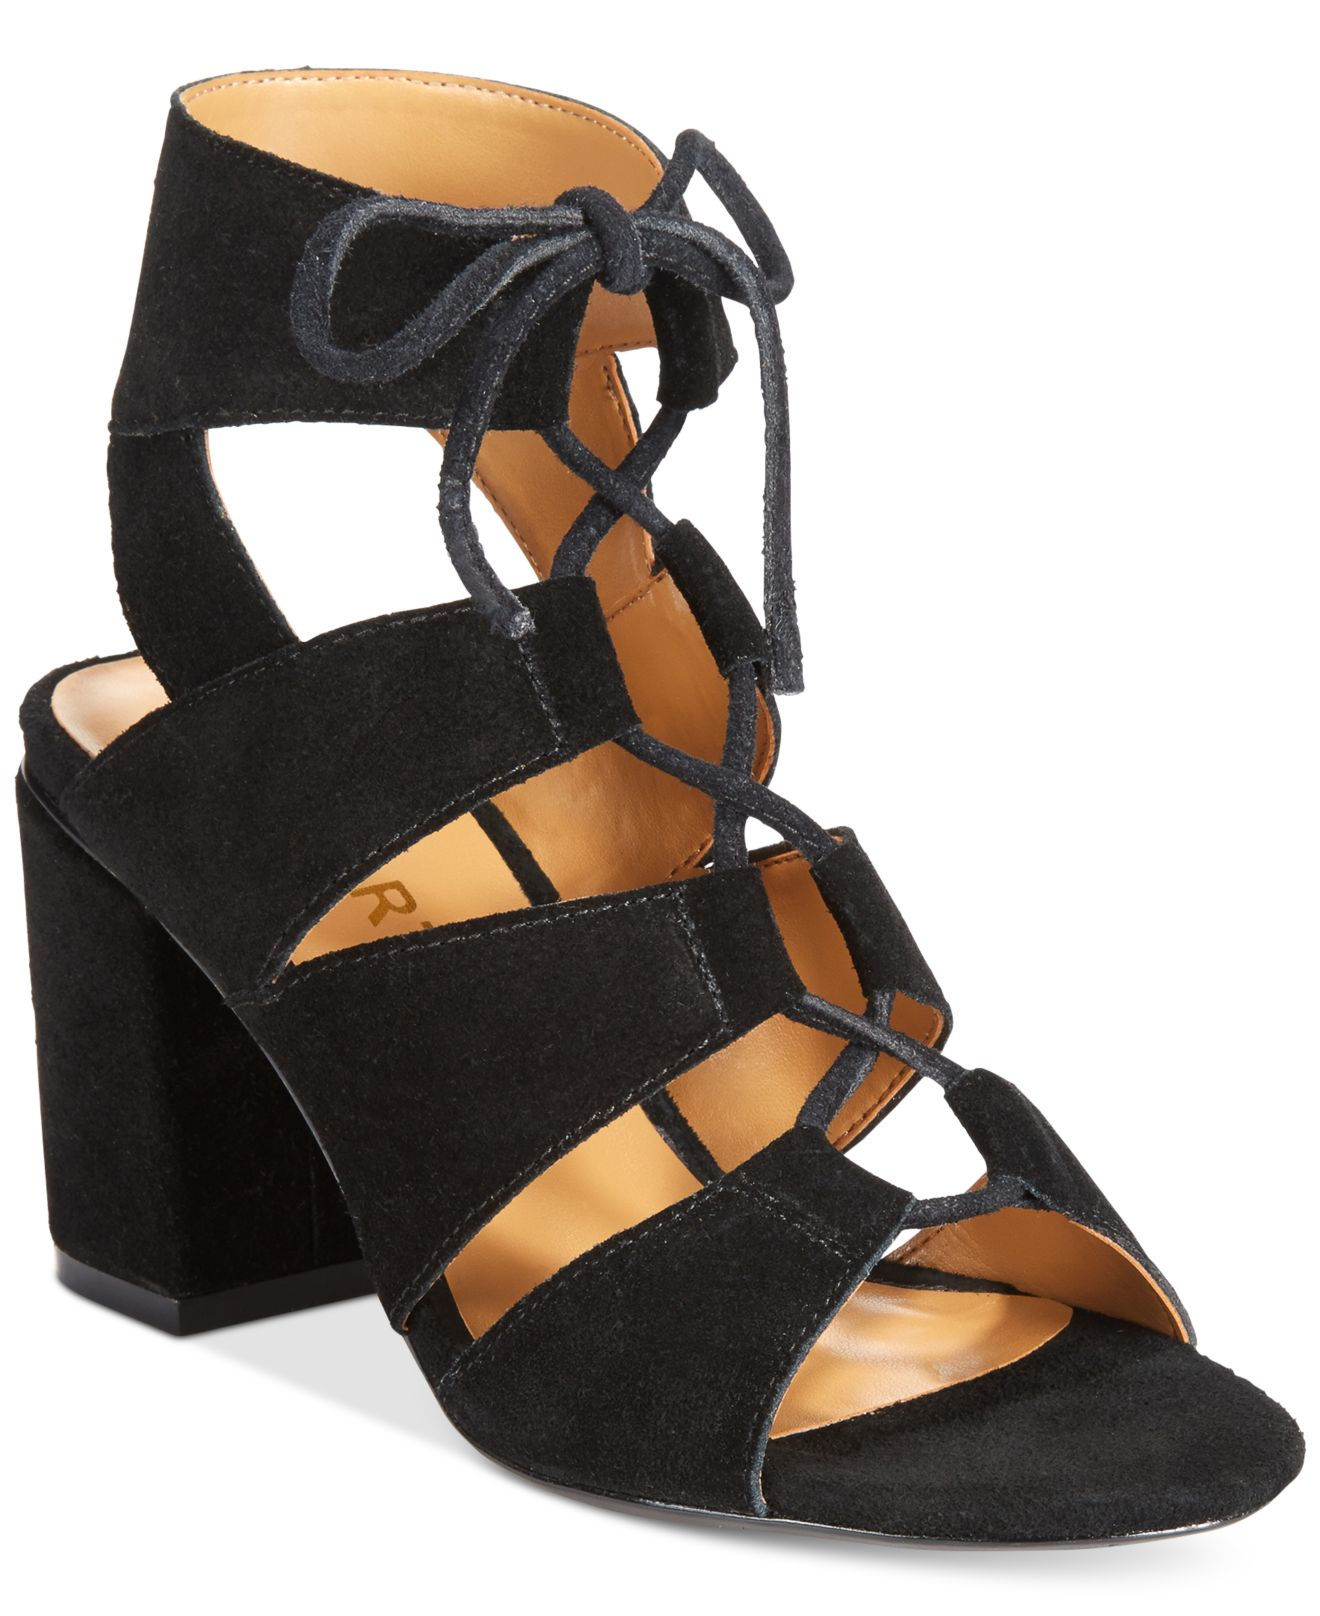 Black Block Heel Gladiator Sandals | Tsaa Heel